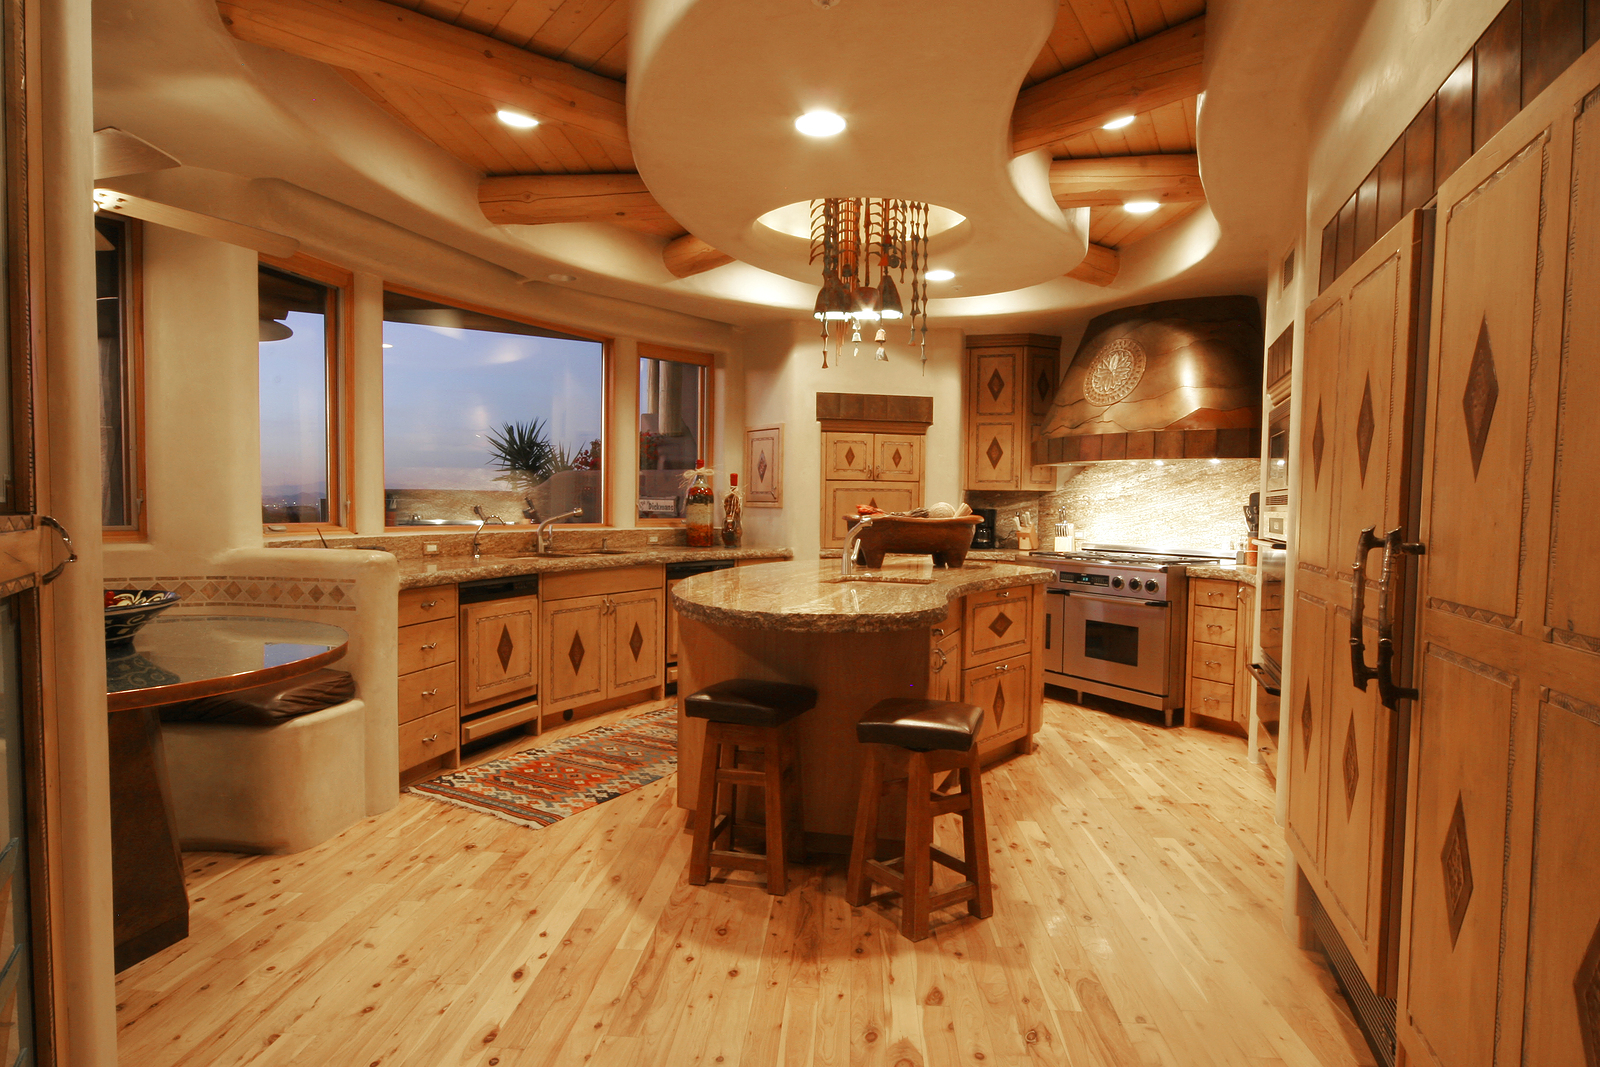 Donco designs is a pompano beach remodeling contractor for Custom kitchen remodel